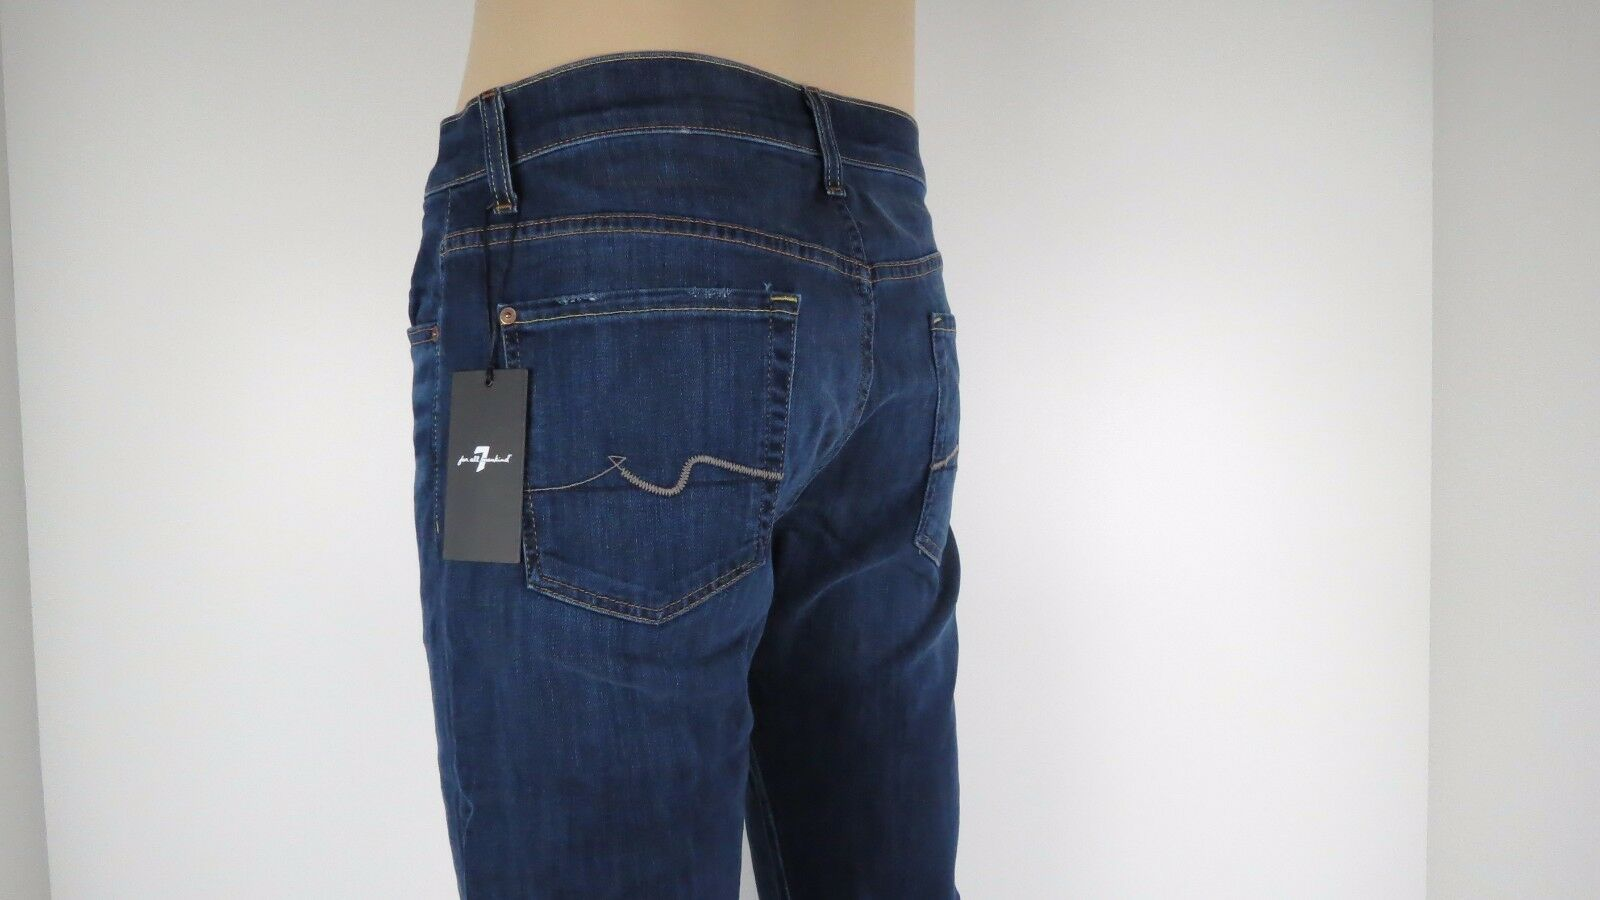 NWT 7 Seven For All Mankind CARSEN, Hawaiian Ice, Size 30,